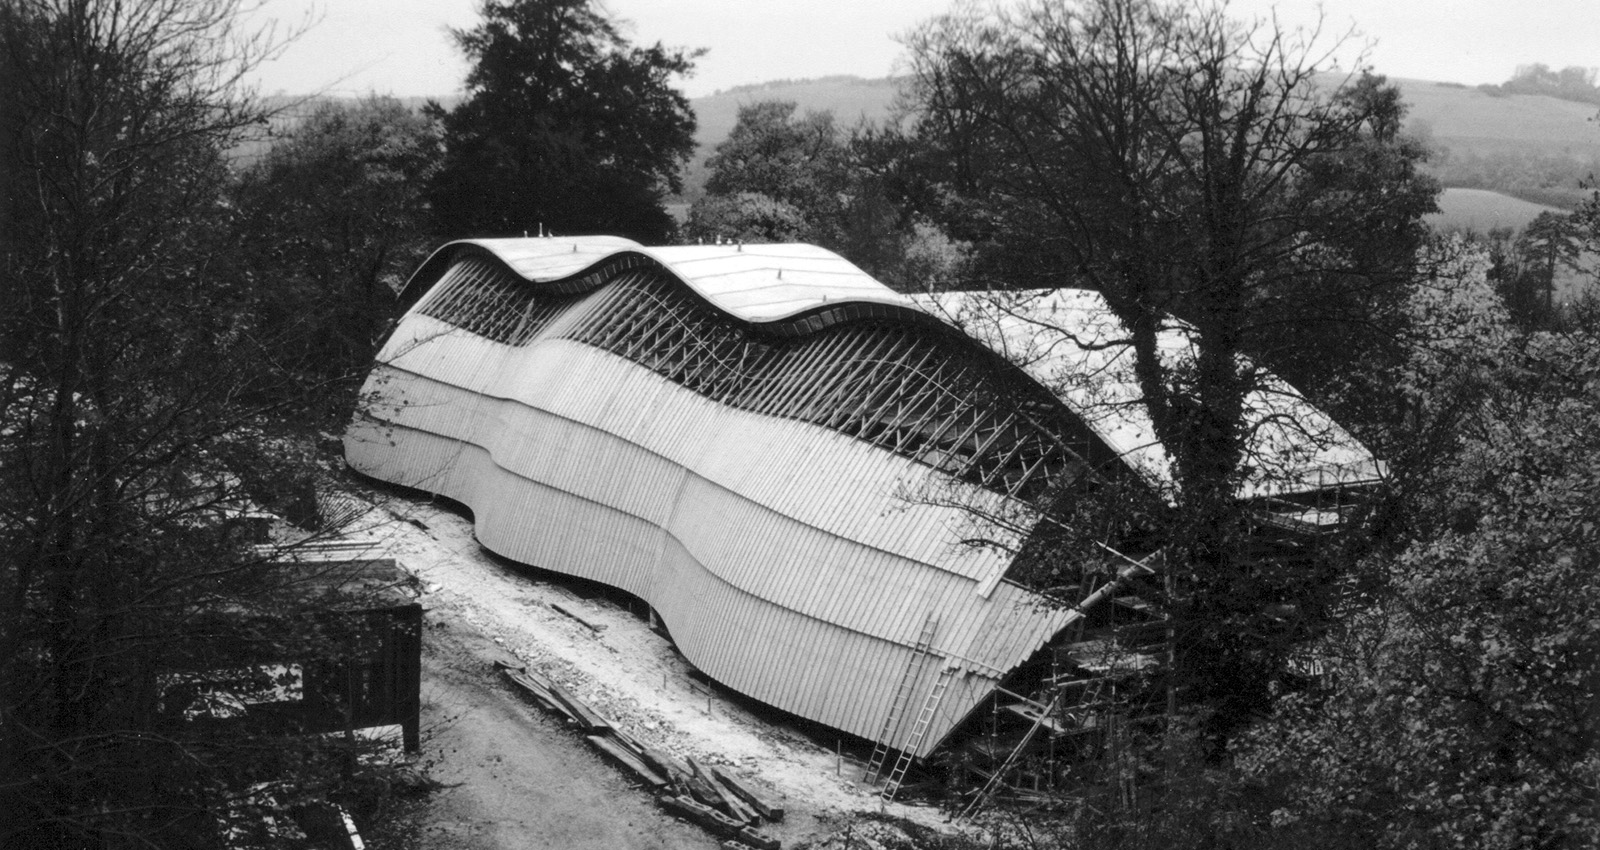 Gridshell, Weald and Downland Open Air Museum, West Sussex